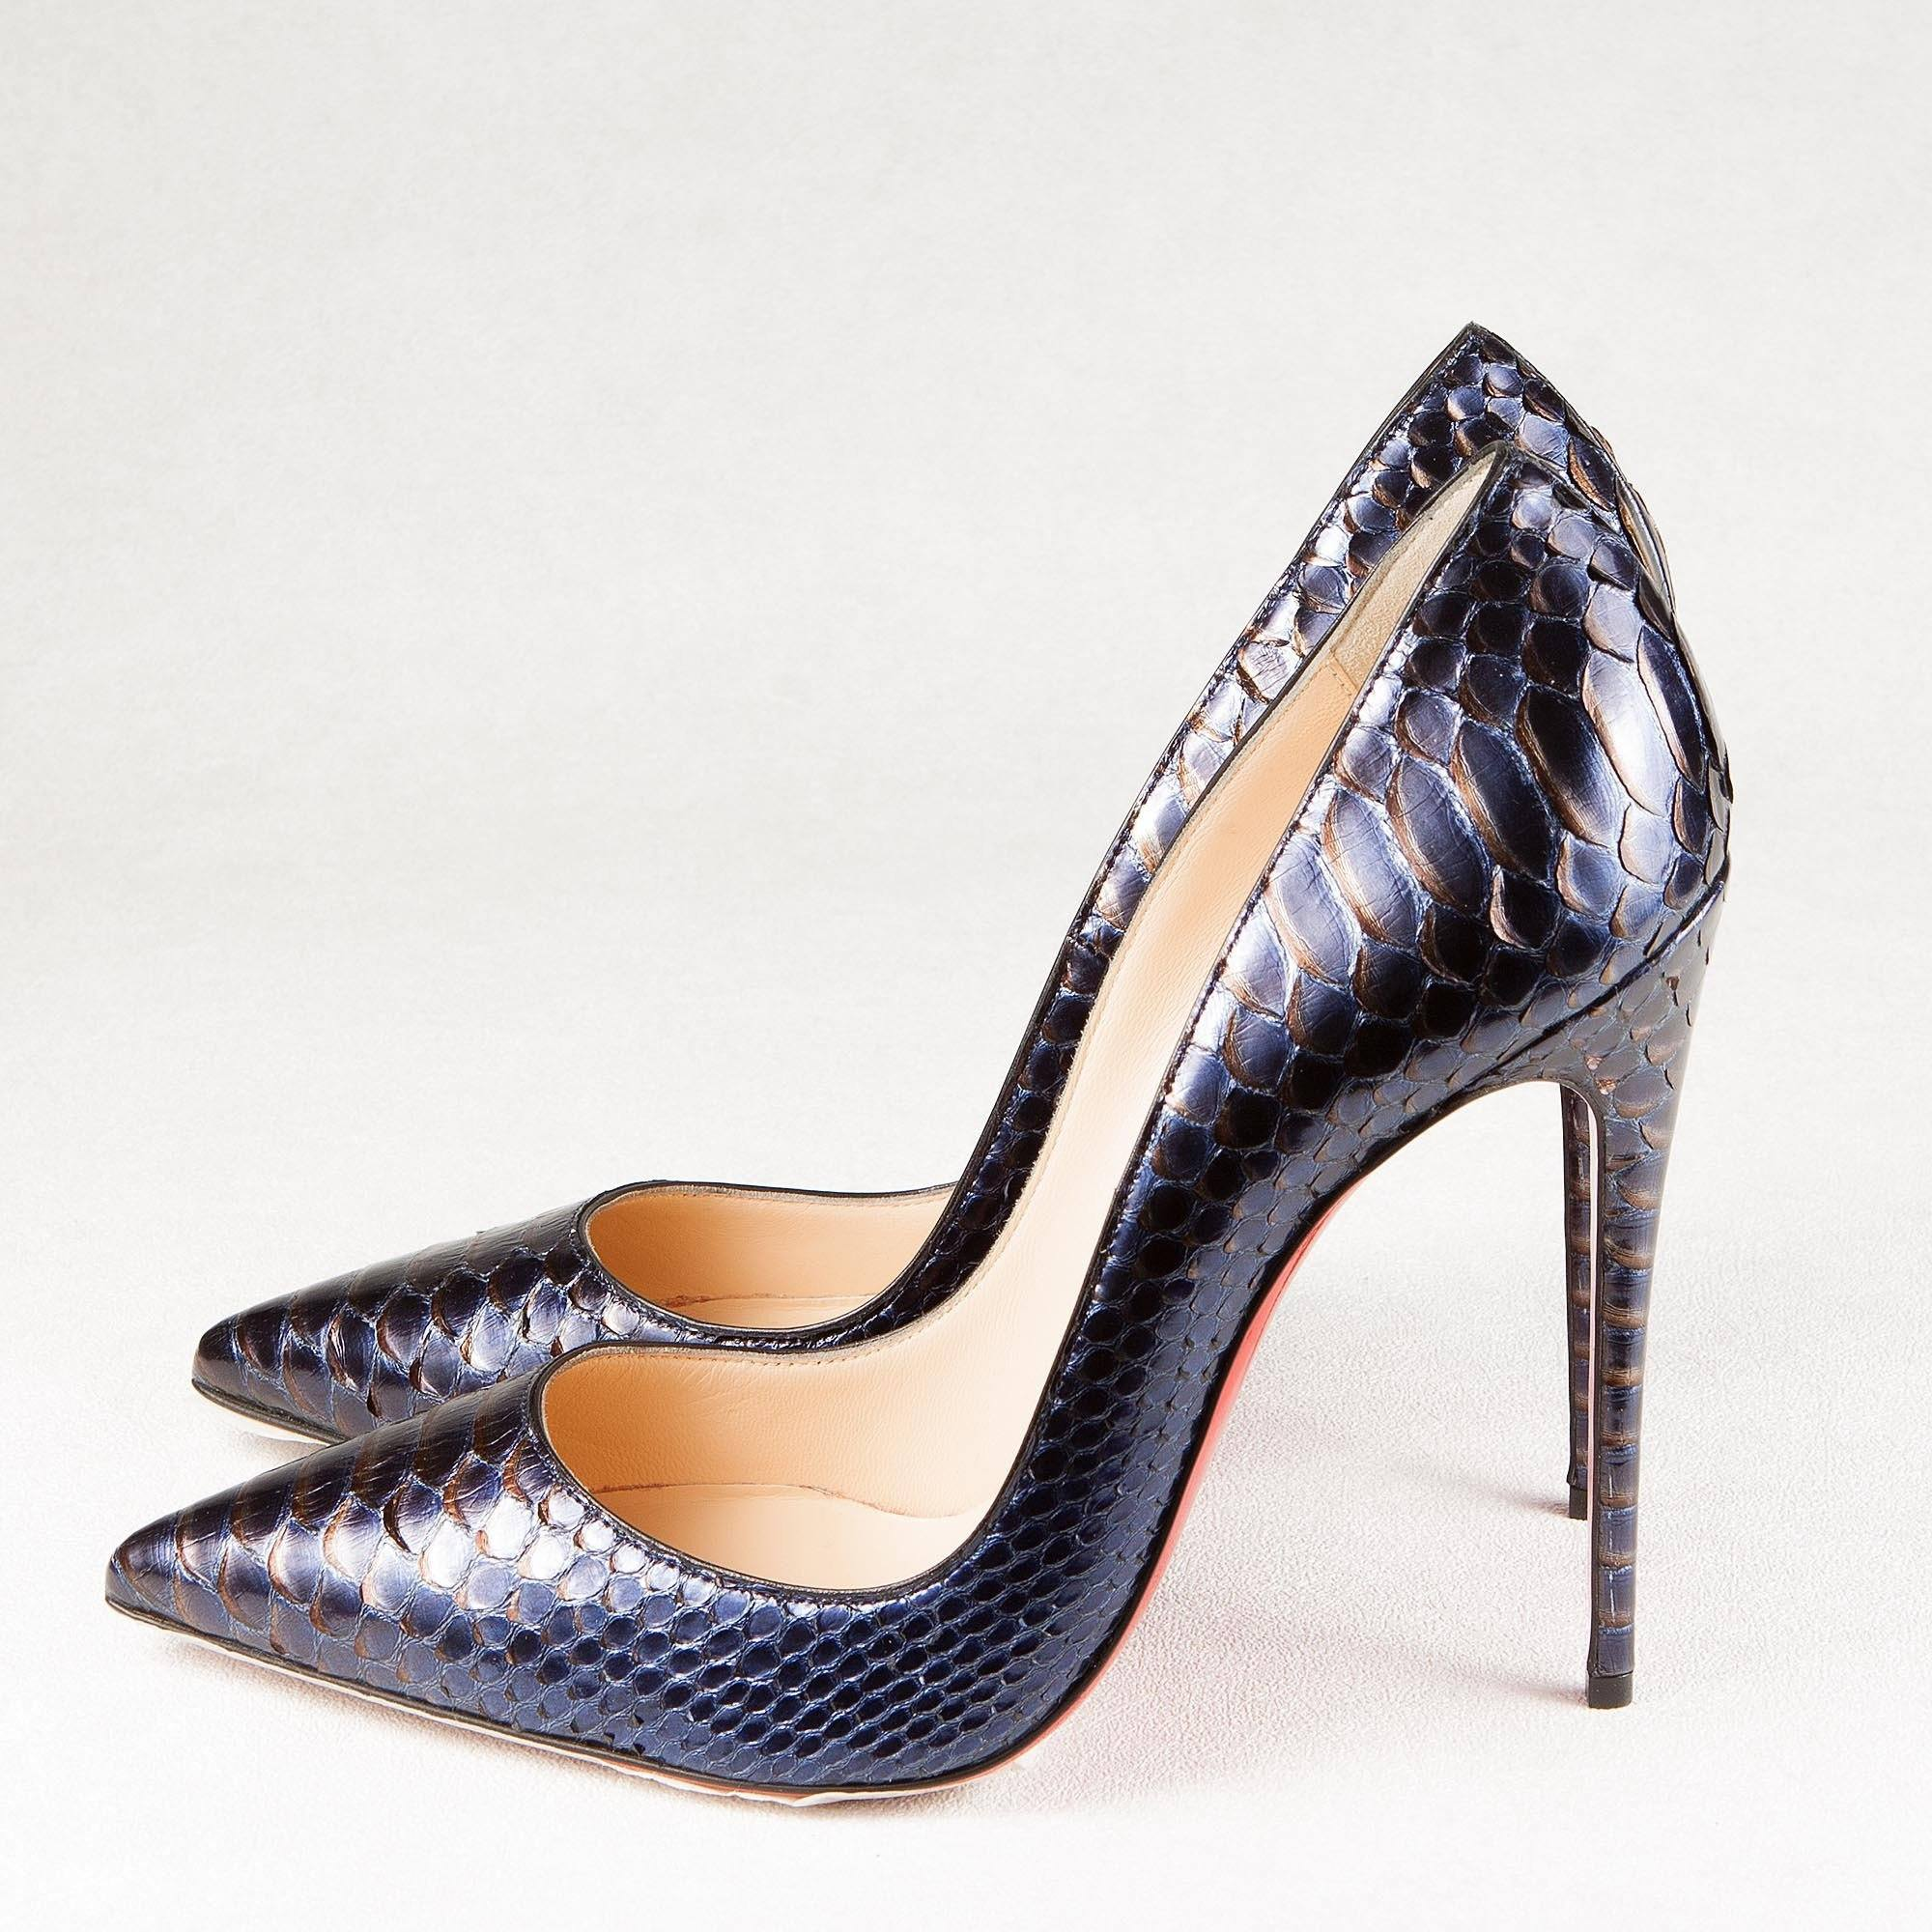 04f9861587c7 Christian Louboutin Blue So Kate Metallic Python Pumps – Garderobe